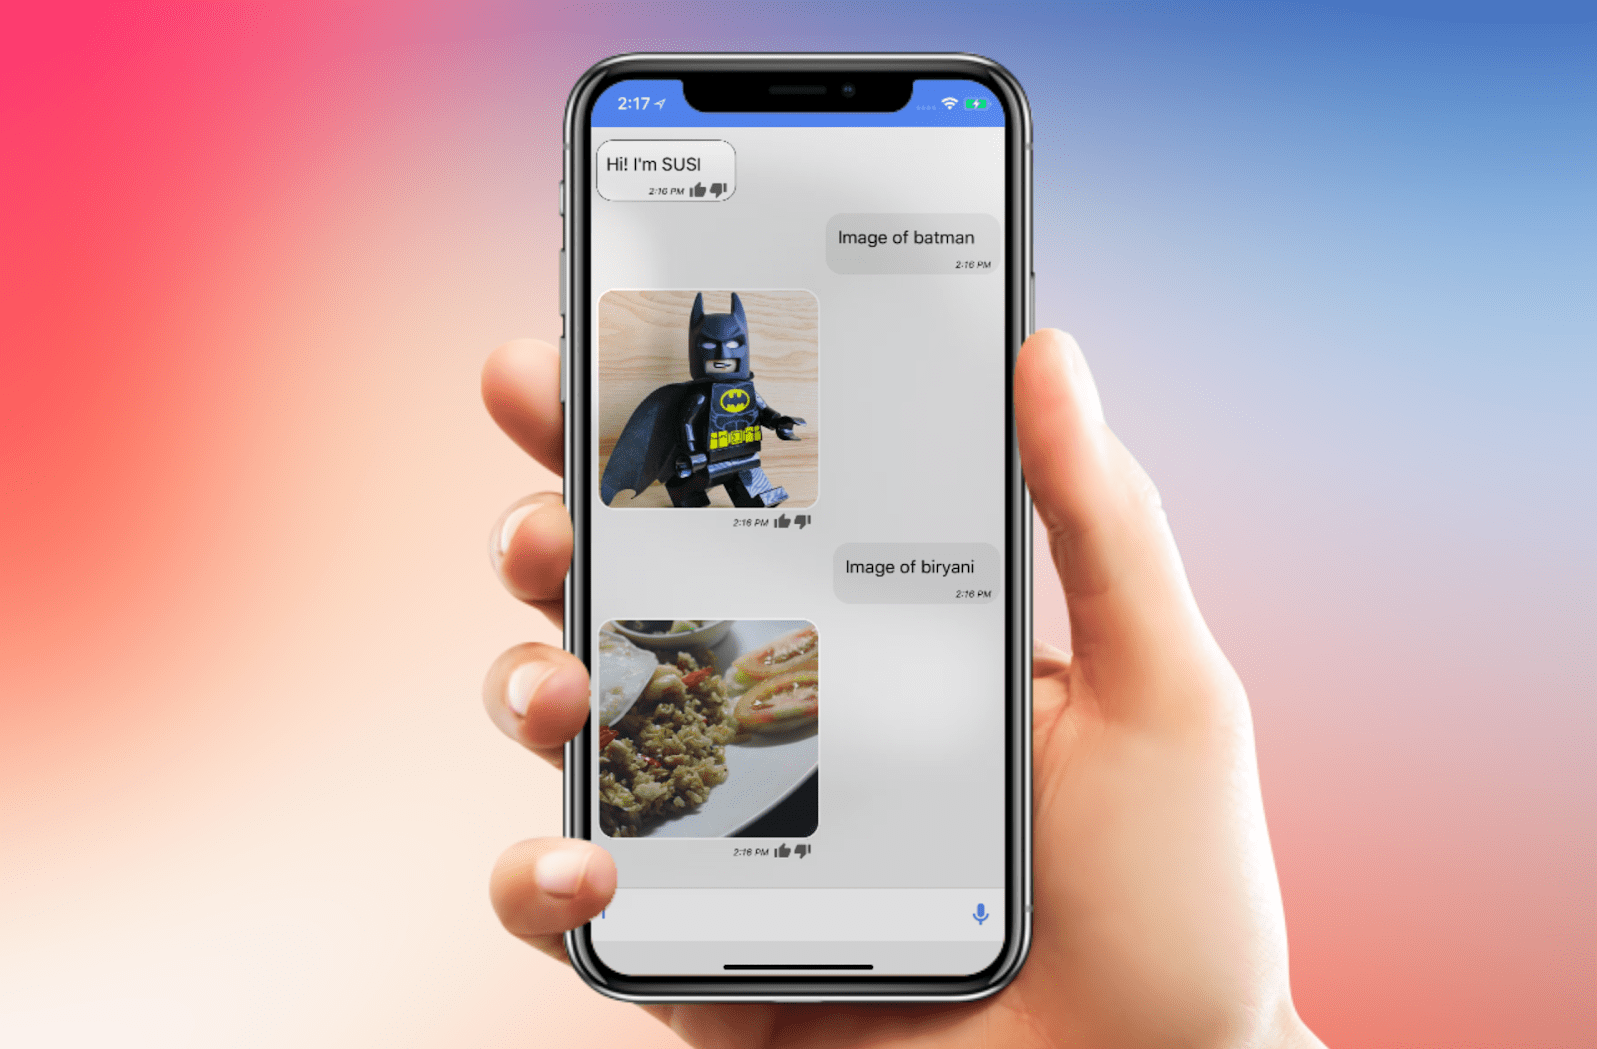 Adding Support for Displaying Images in SUSI iOS